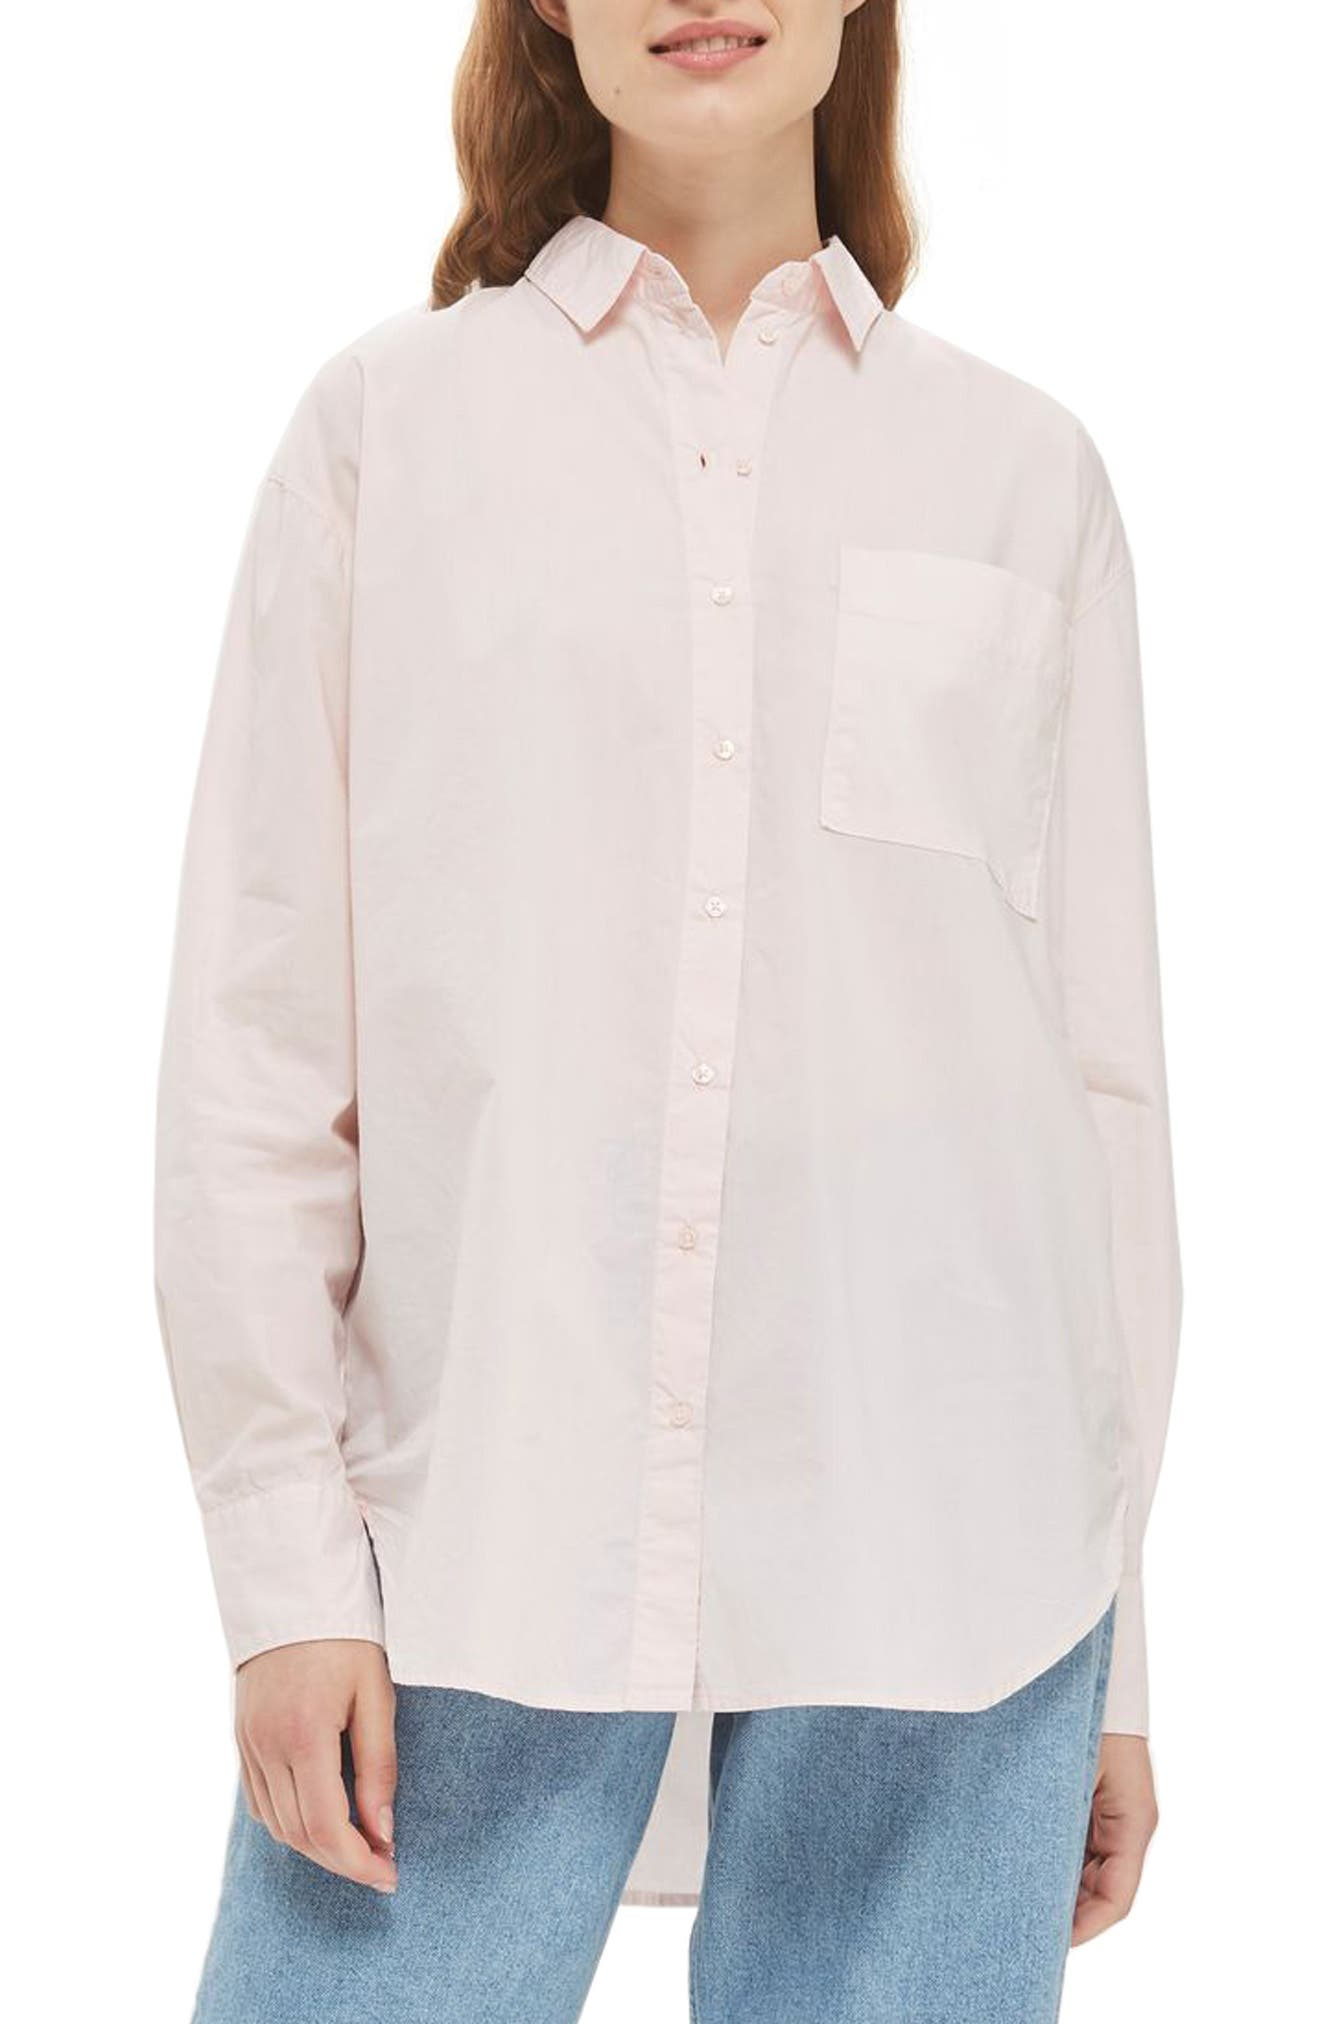 Olly Oversize Poplin Shirt,                             Main thumbnail 1, color,                             680